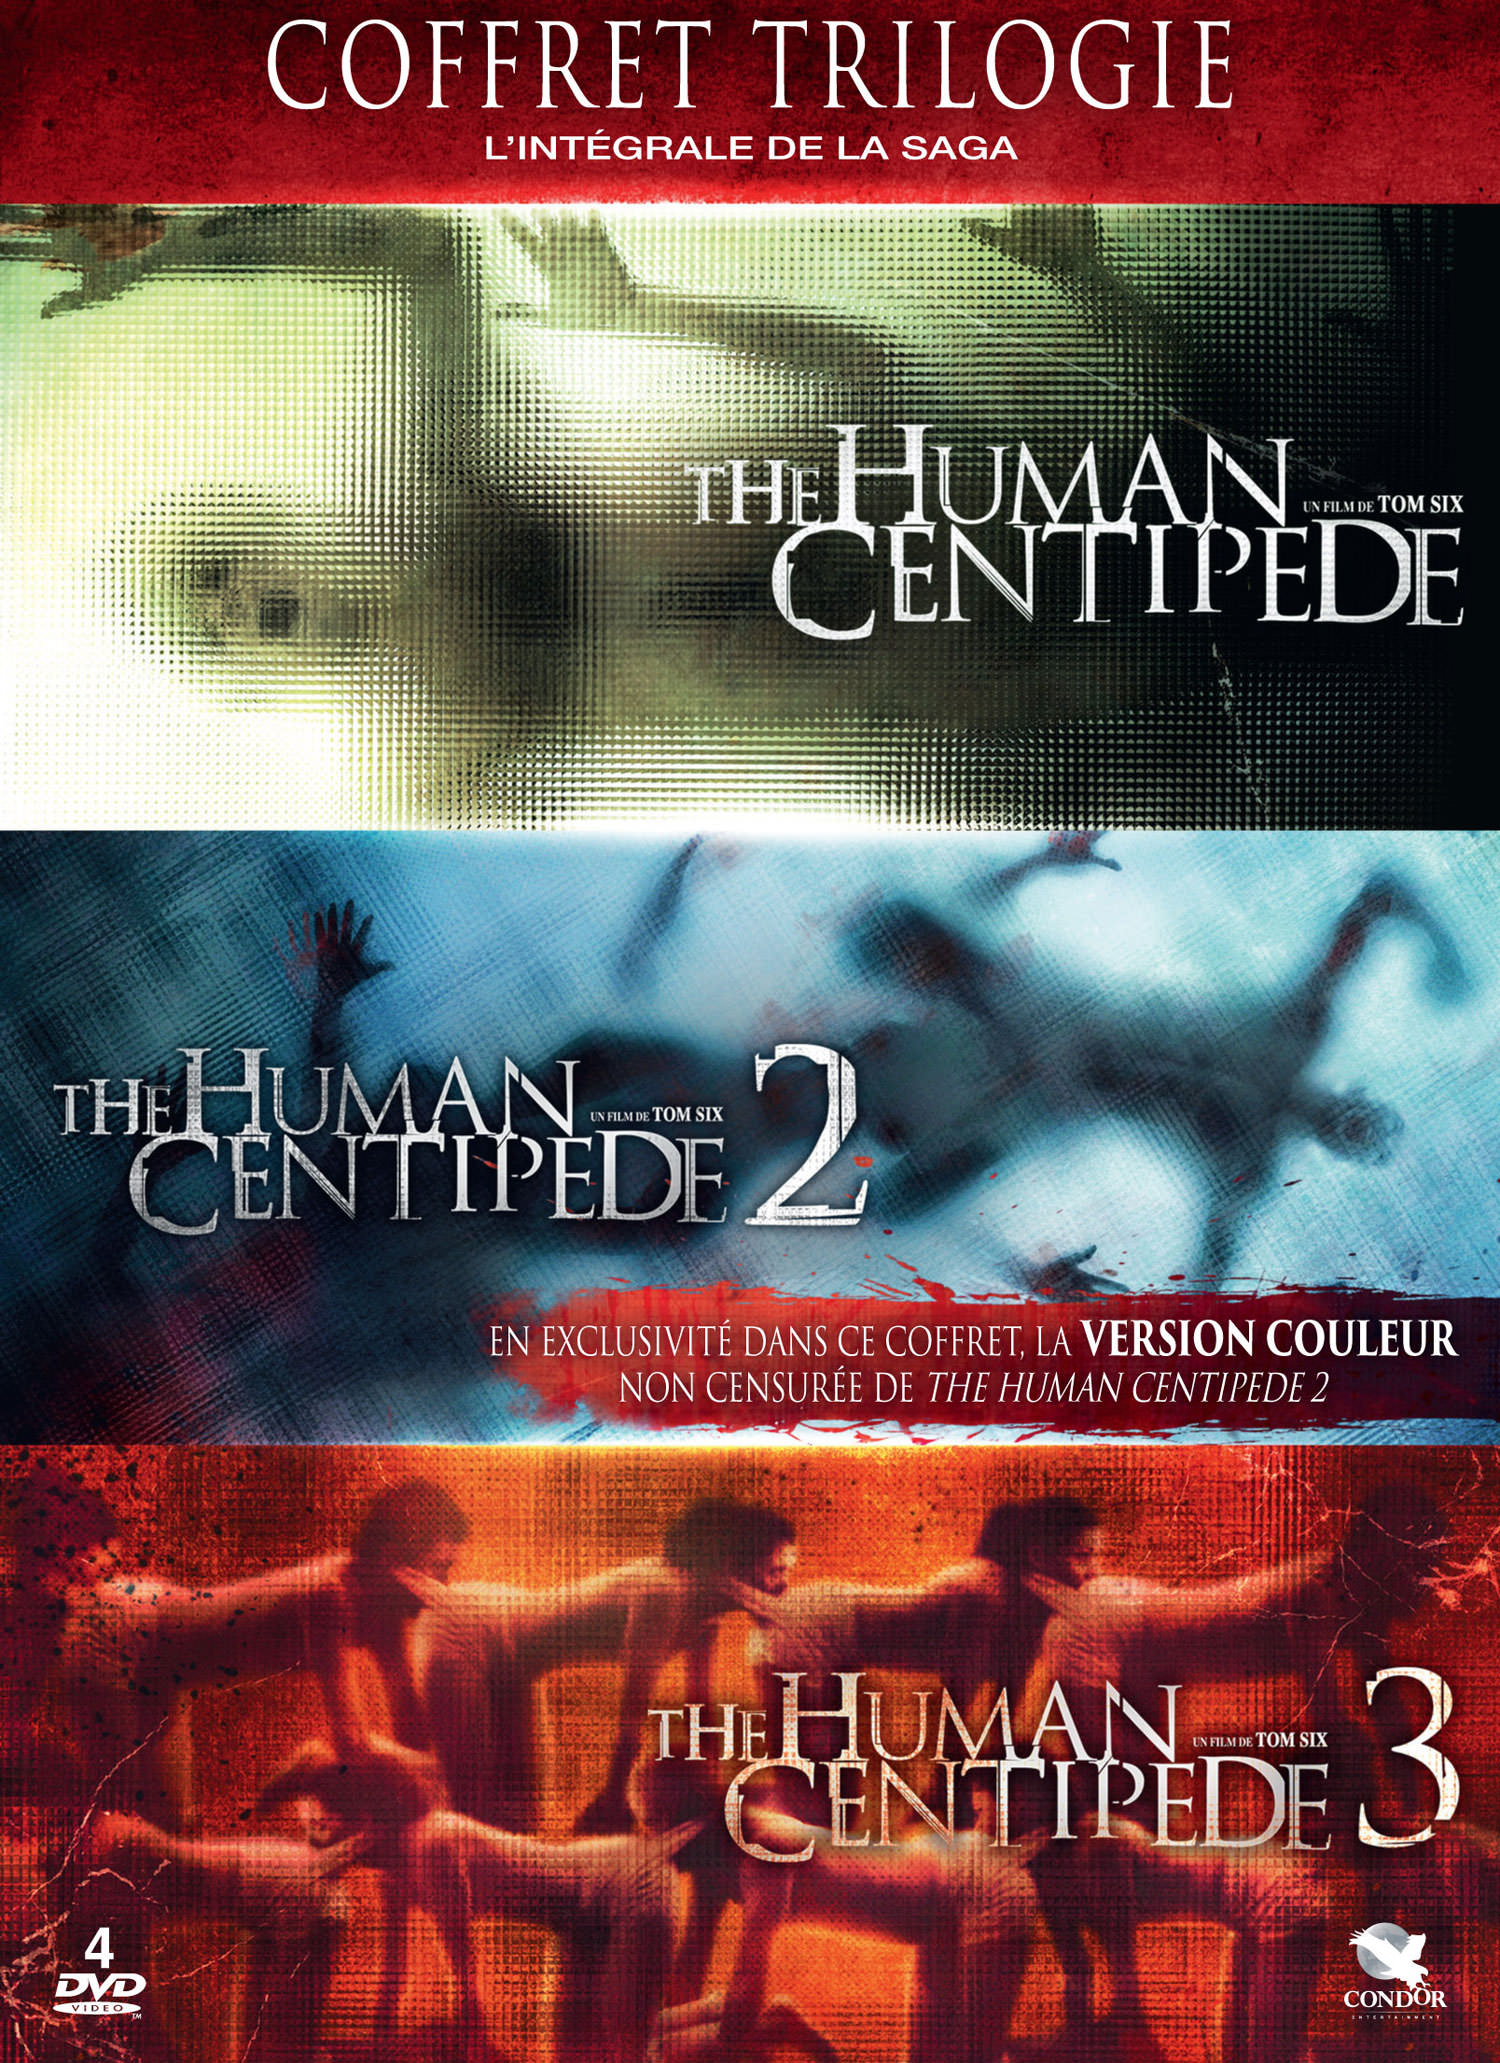 The Human Centipede - Coffret DVD Trilogie